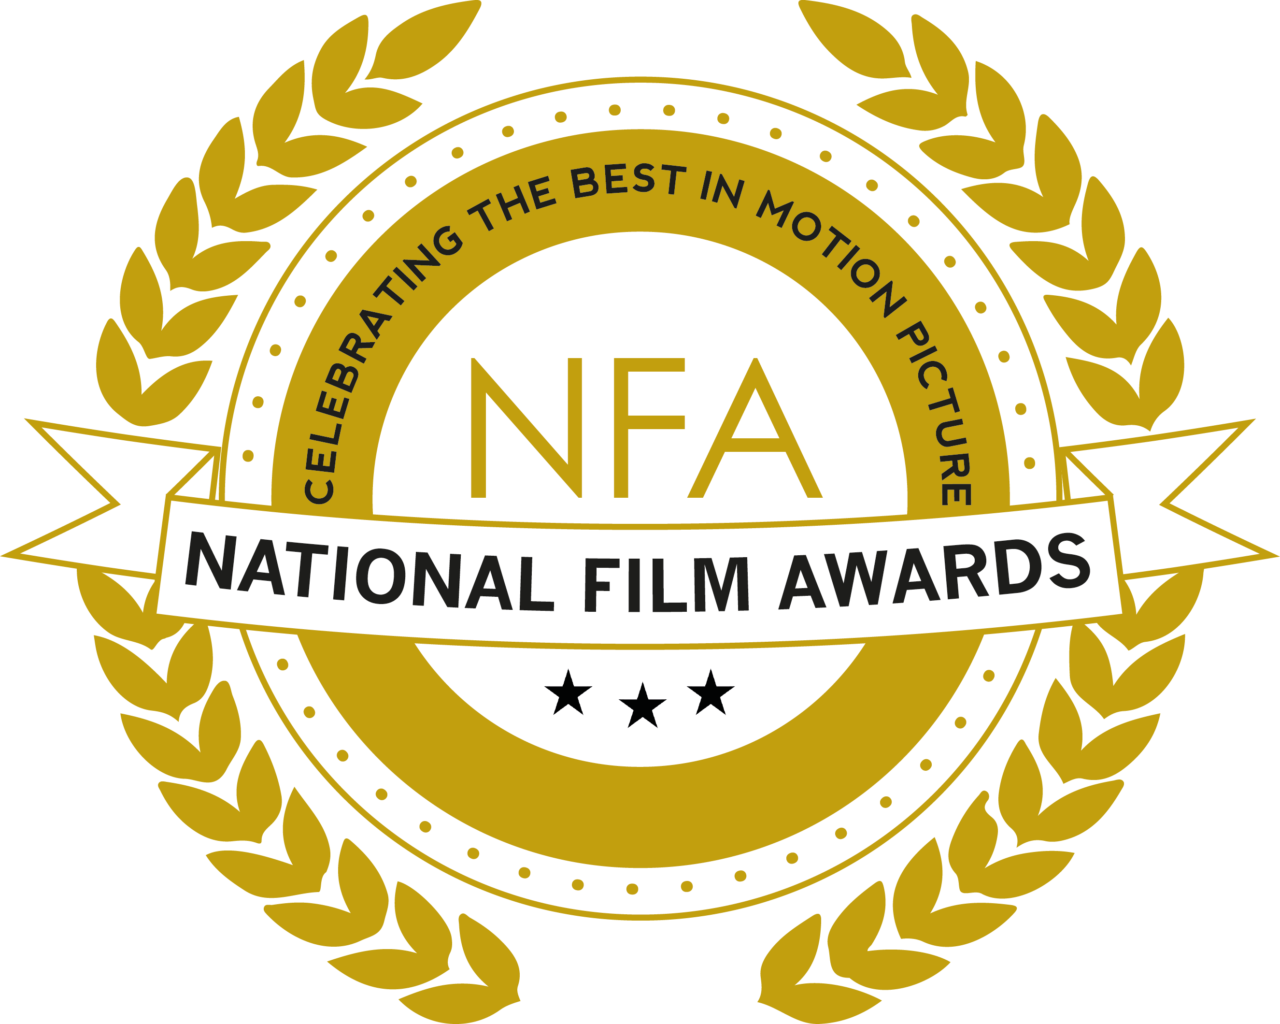 national_film_awards_logo-1280x1024.png